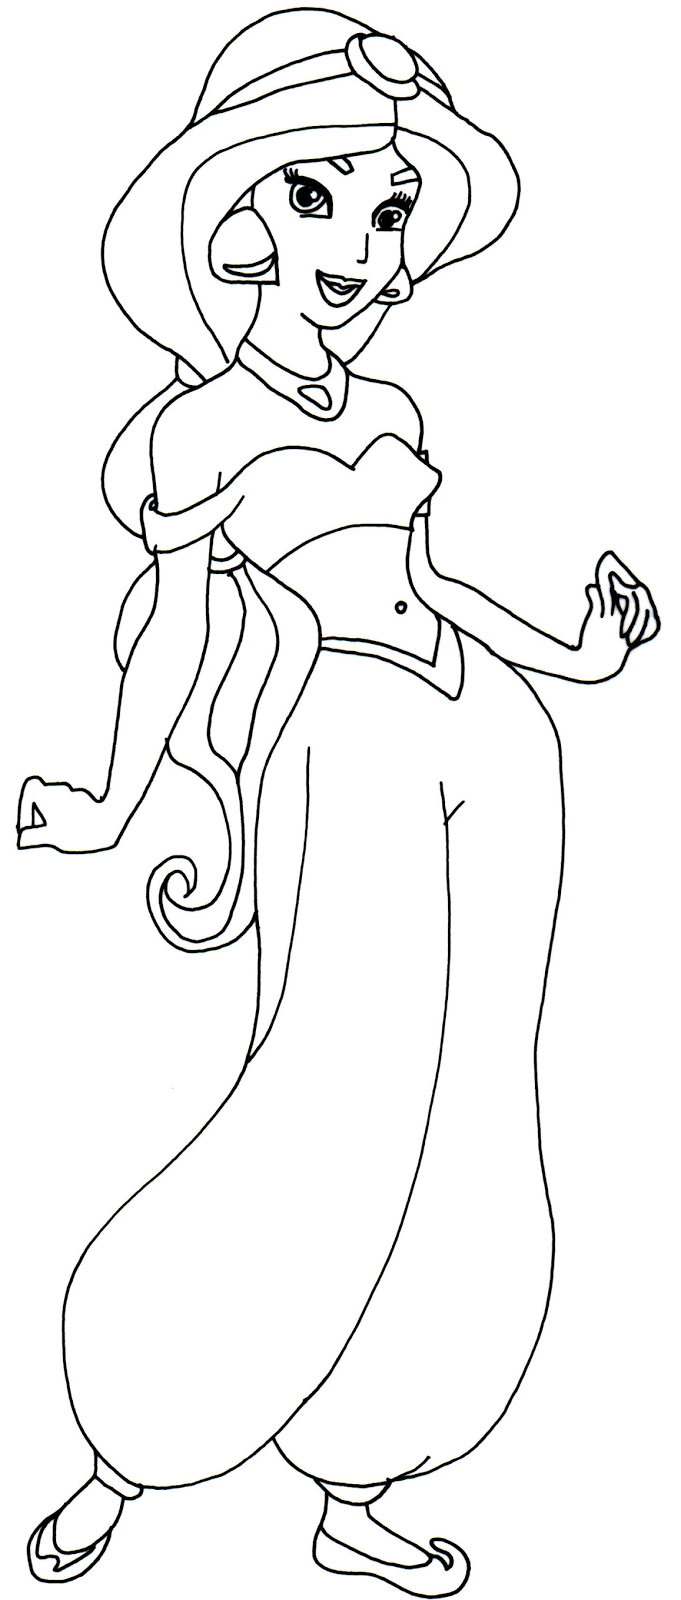 Princess Jasmine Coloring Pages Printable - Coloring Page - Coloring ...